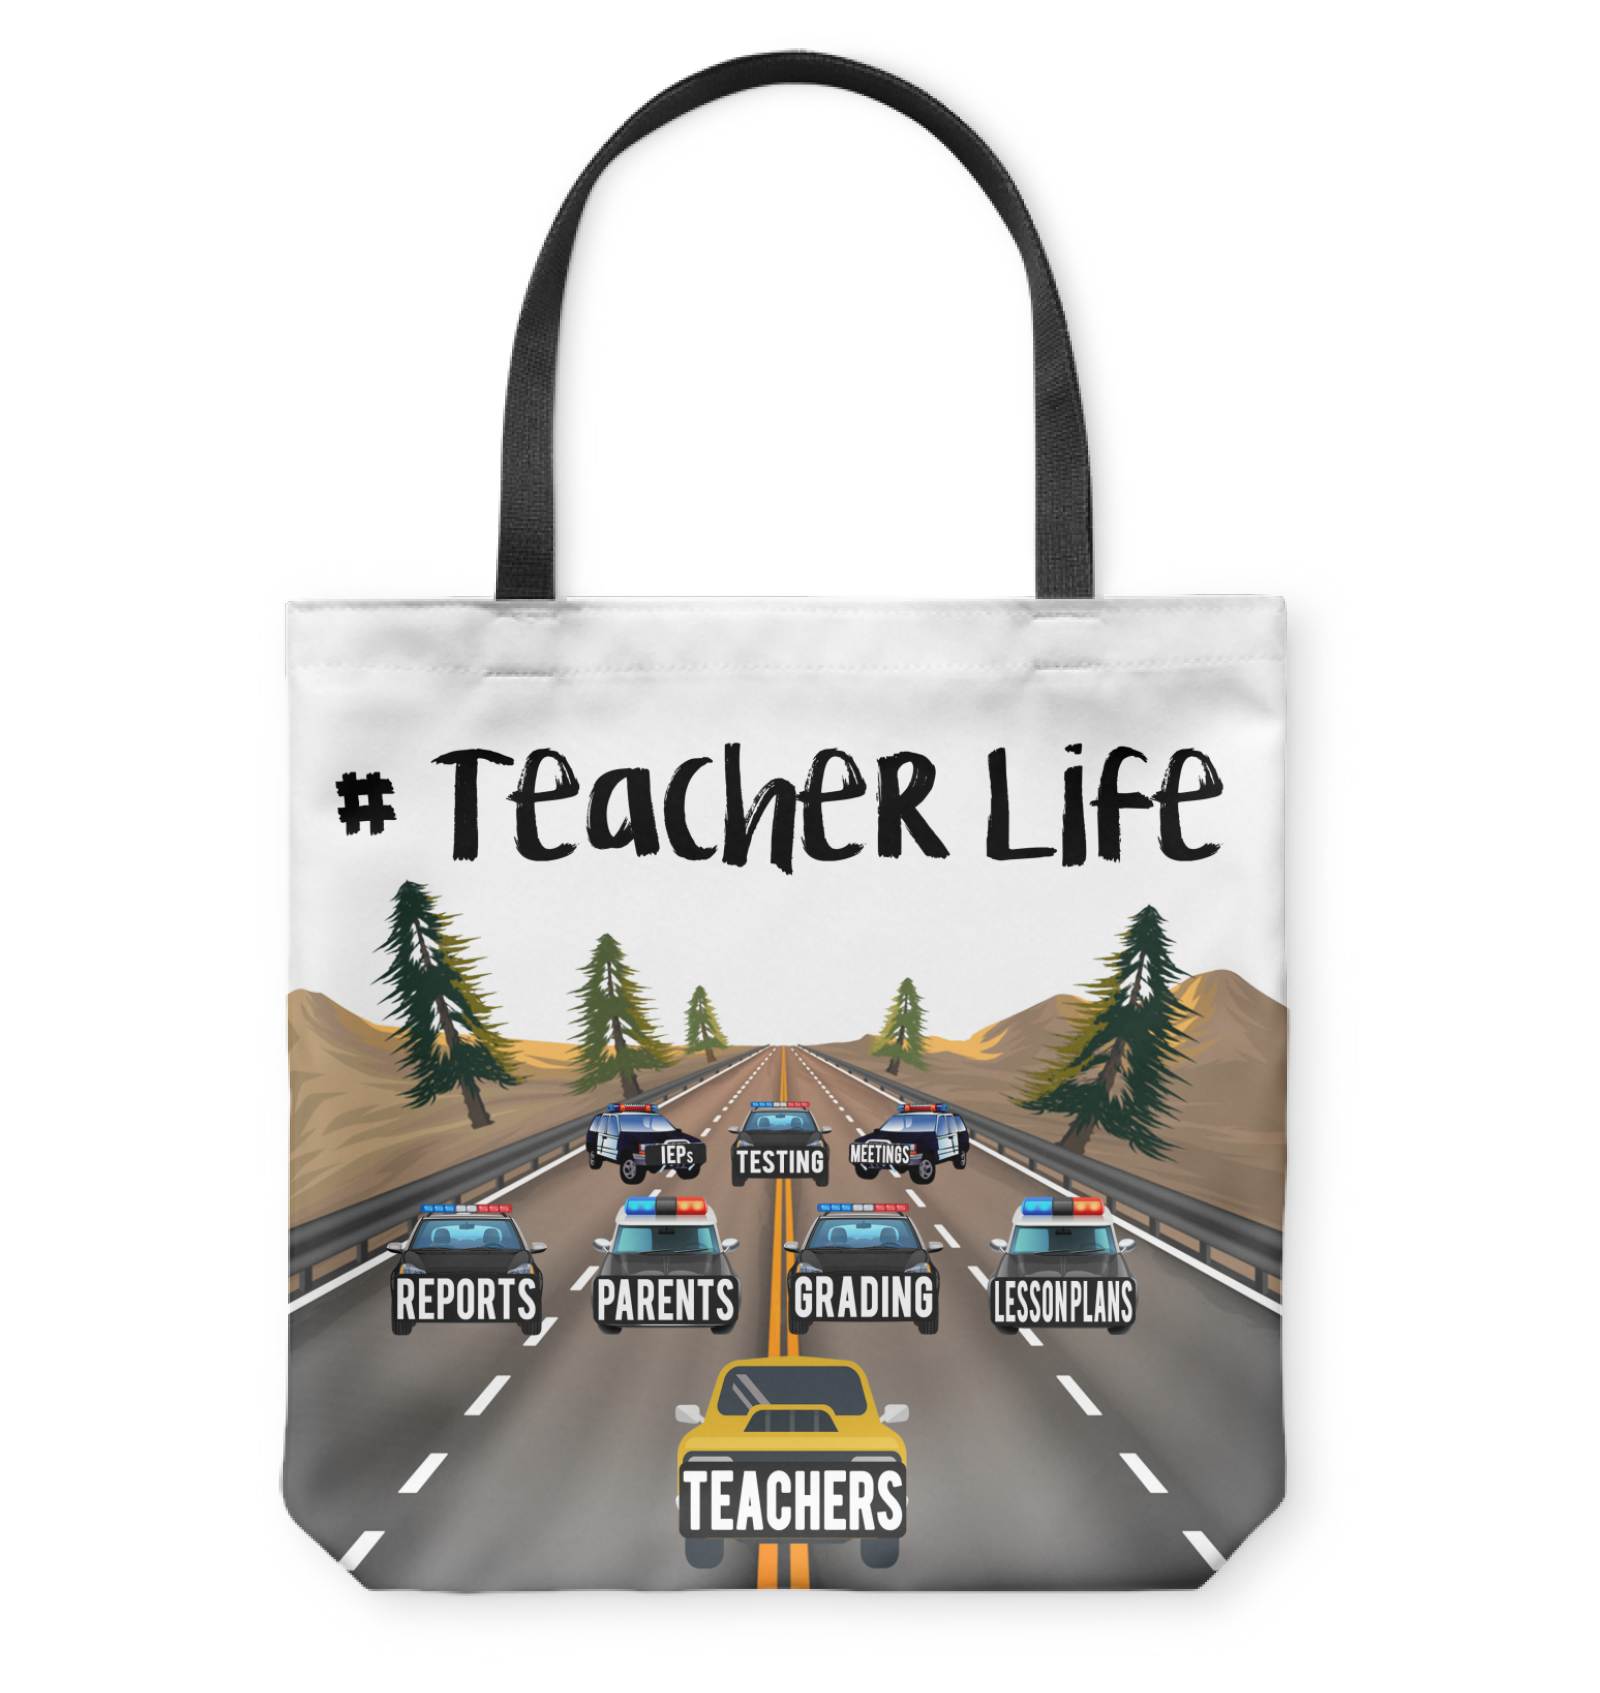 VIRA teacherlife tote bag for awesome teachers